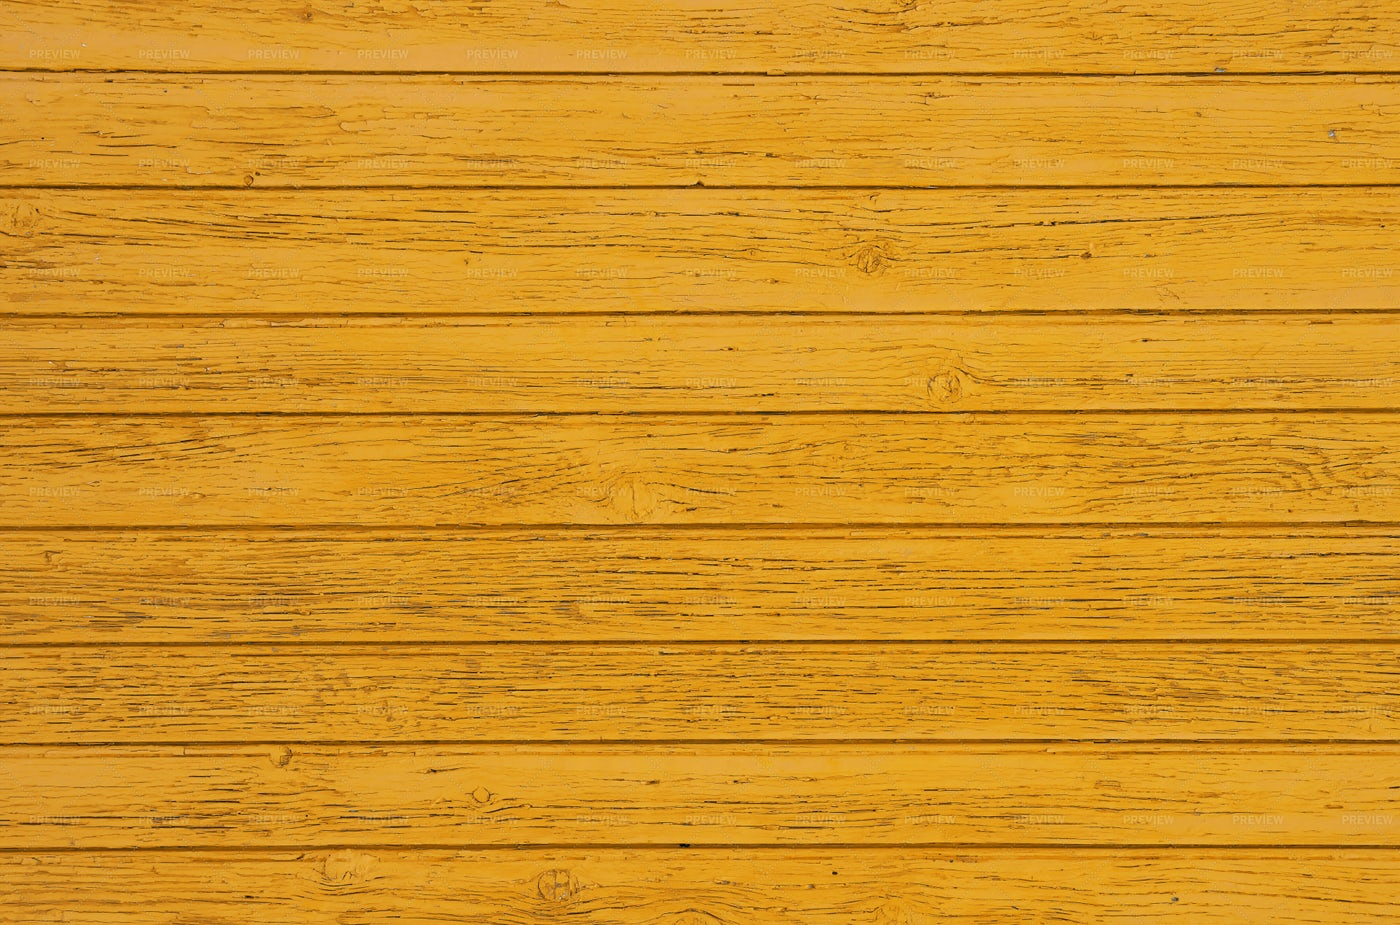 Yellow Painted Wooden Background: Stock Photos